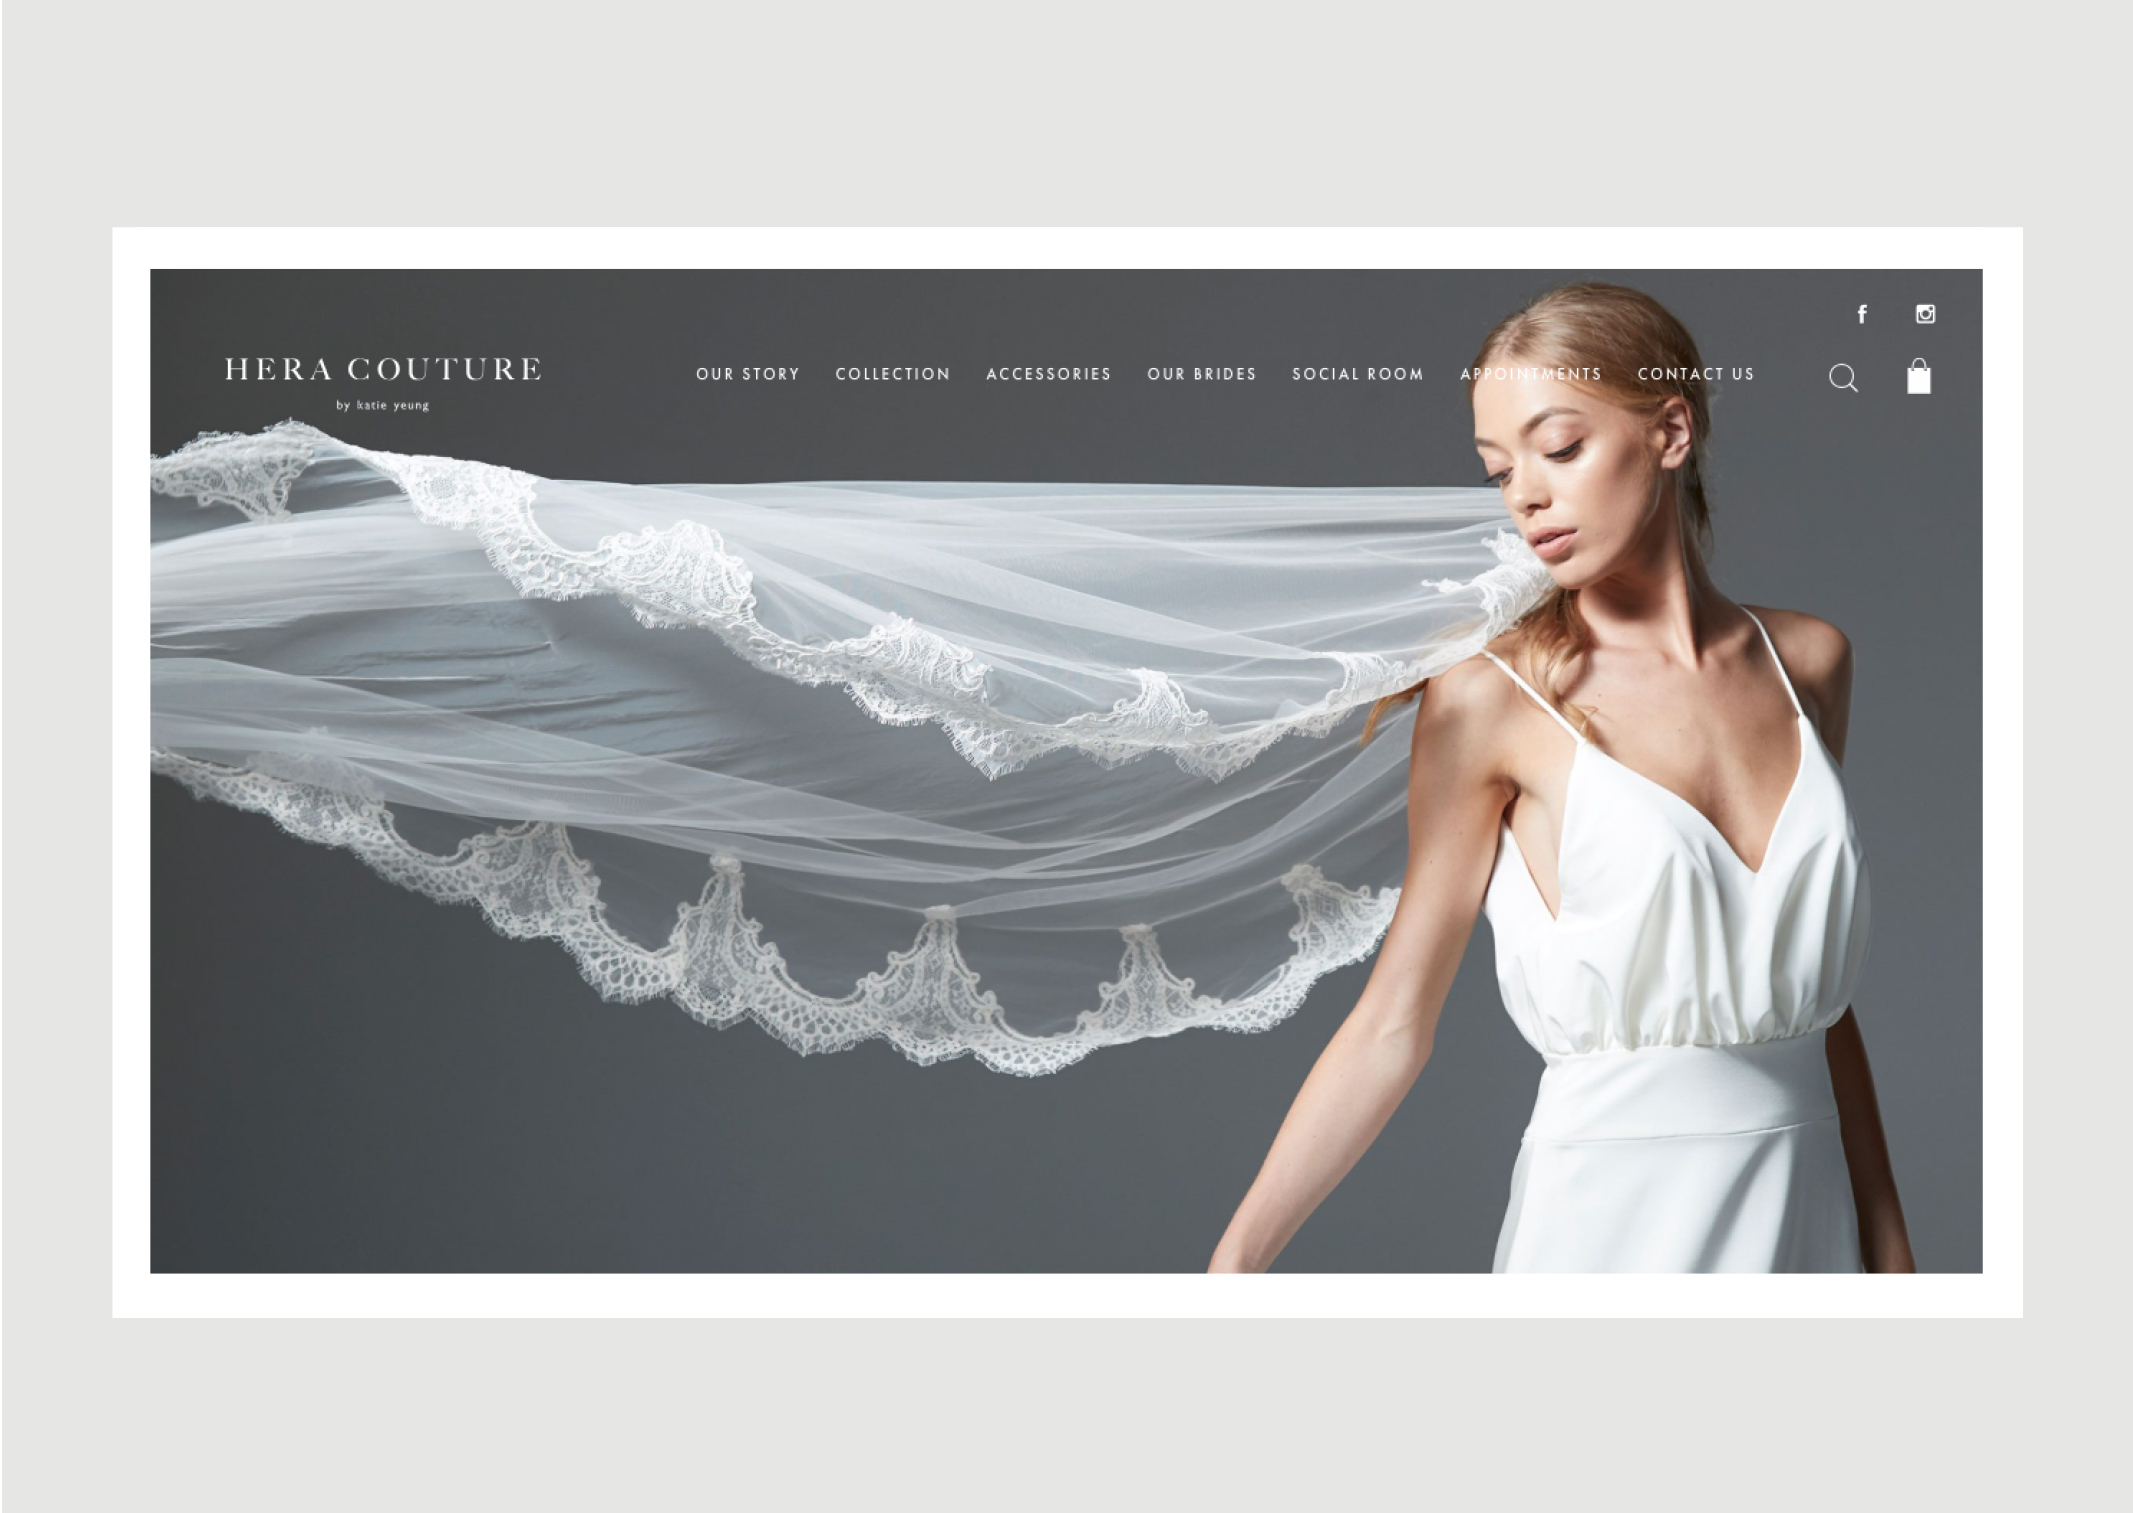 Hera Couture Website Homepage – features bride with dramatic flowing lace veil